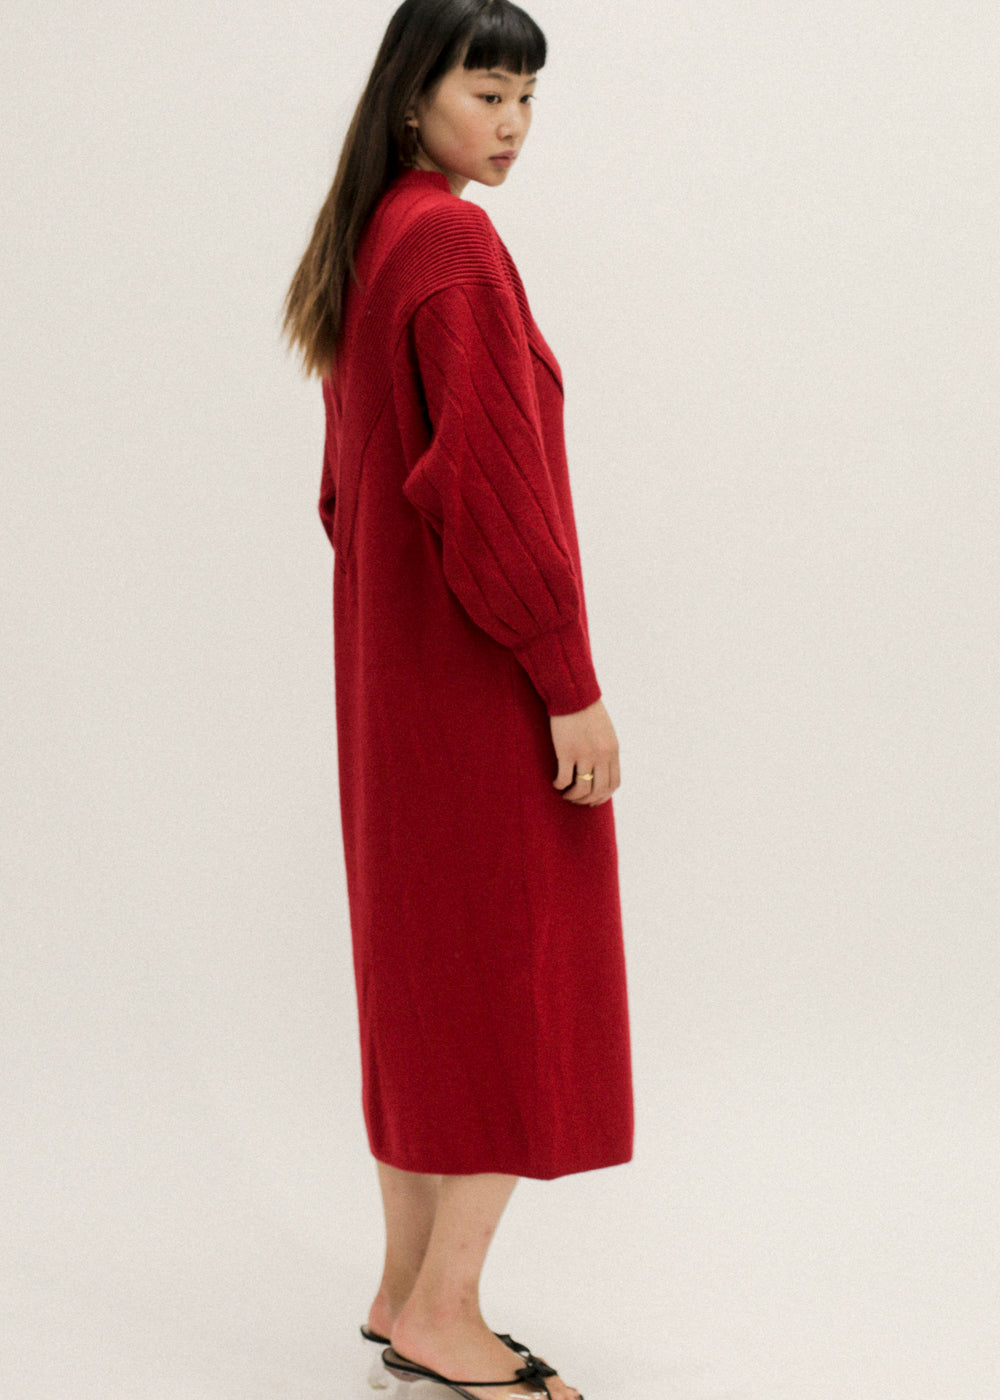 Vintage Red Knit Sweater Dress